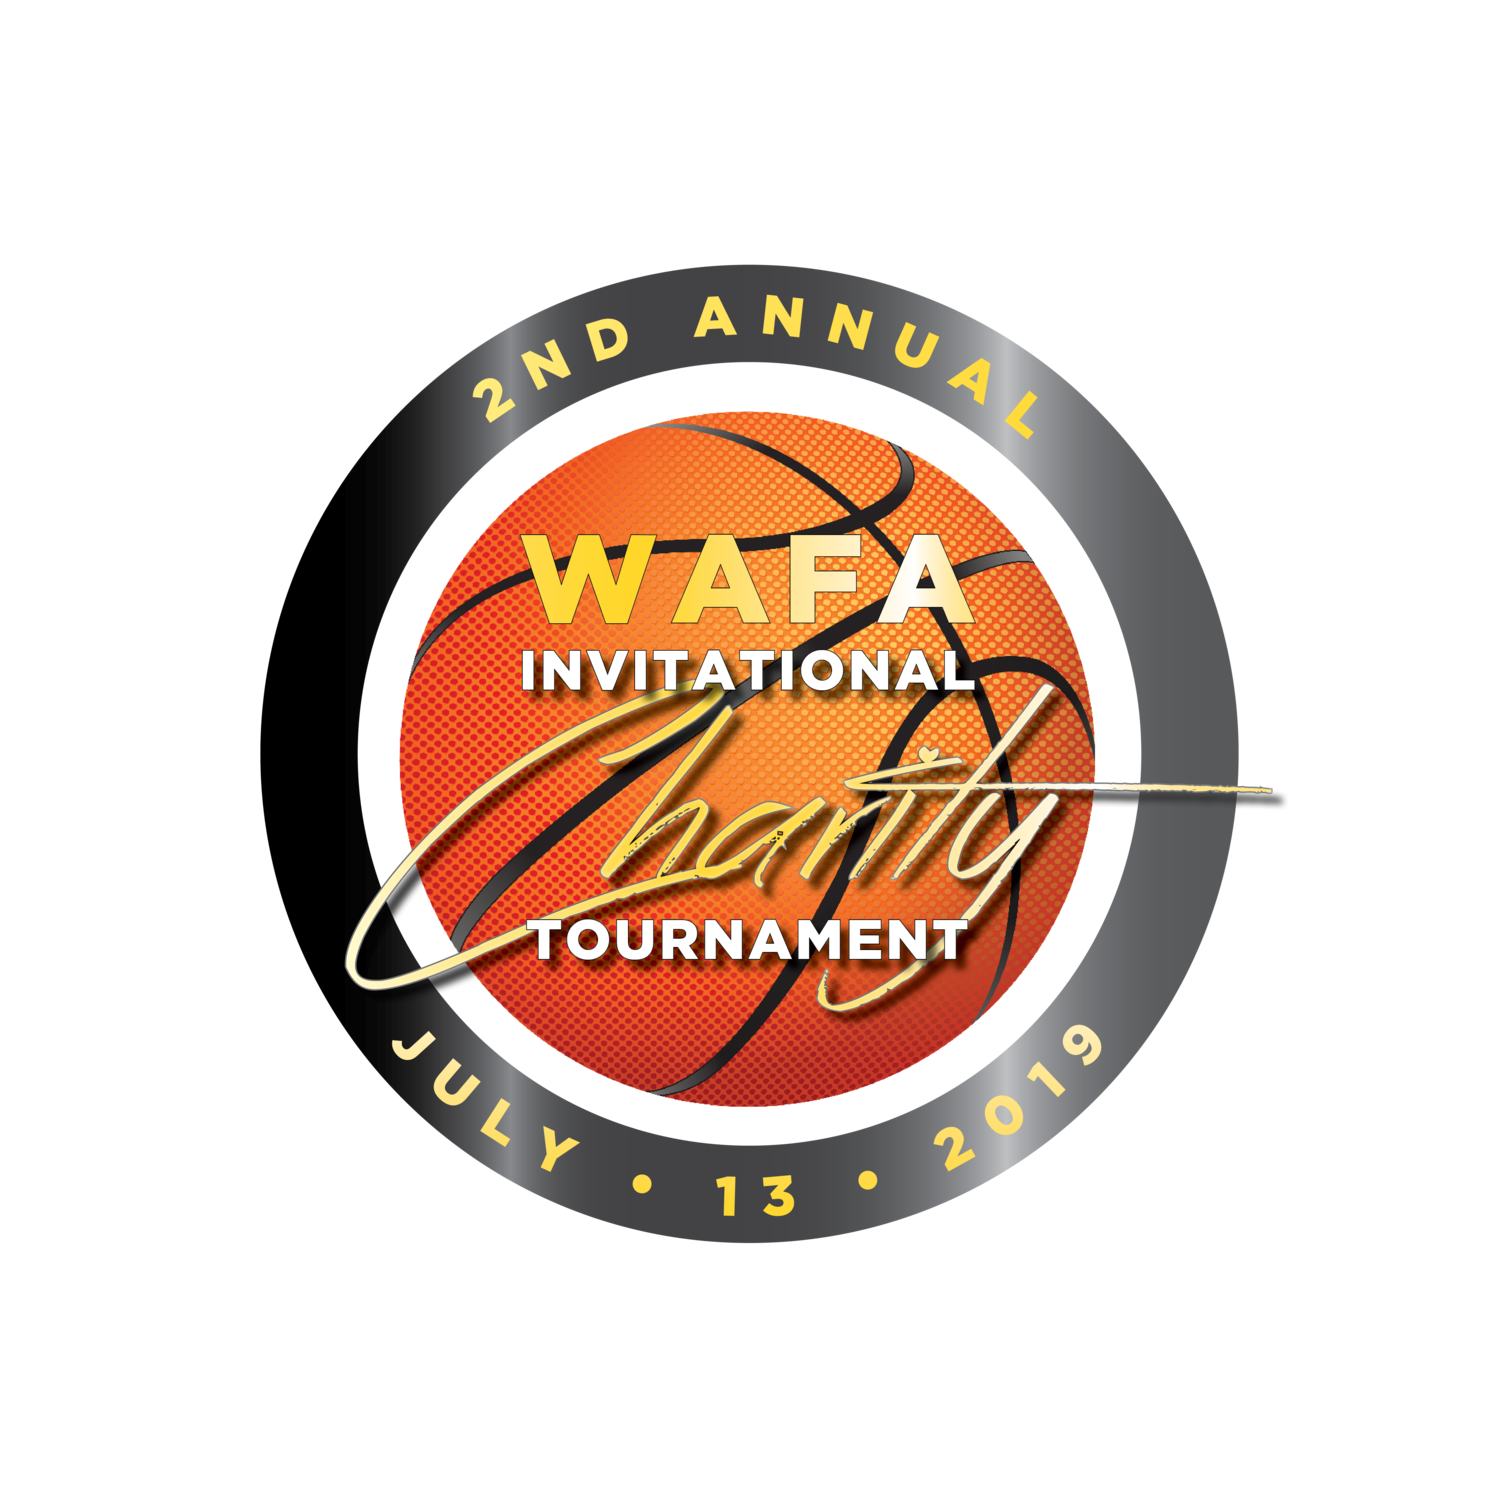 The WAFA Invitational Charity Basketball Tournament